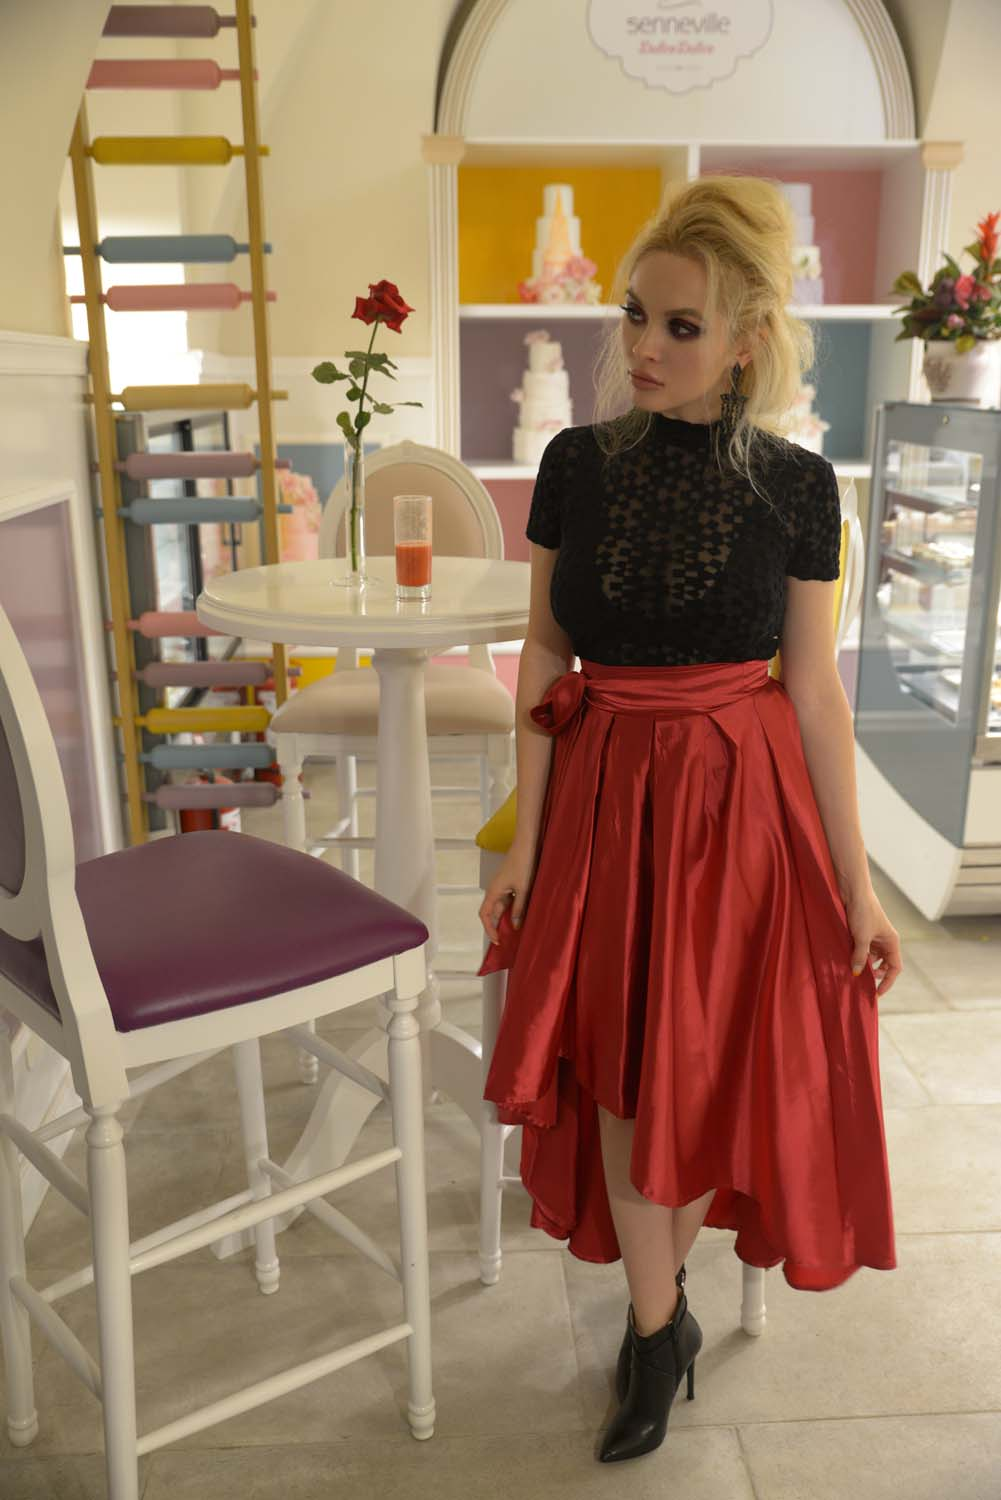 26_pastry_fucsia_skirt_black_cape